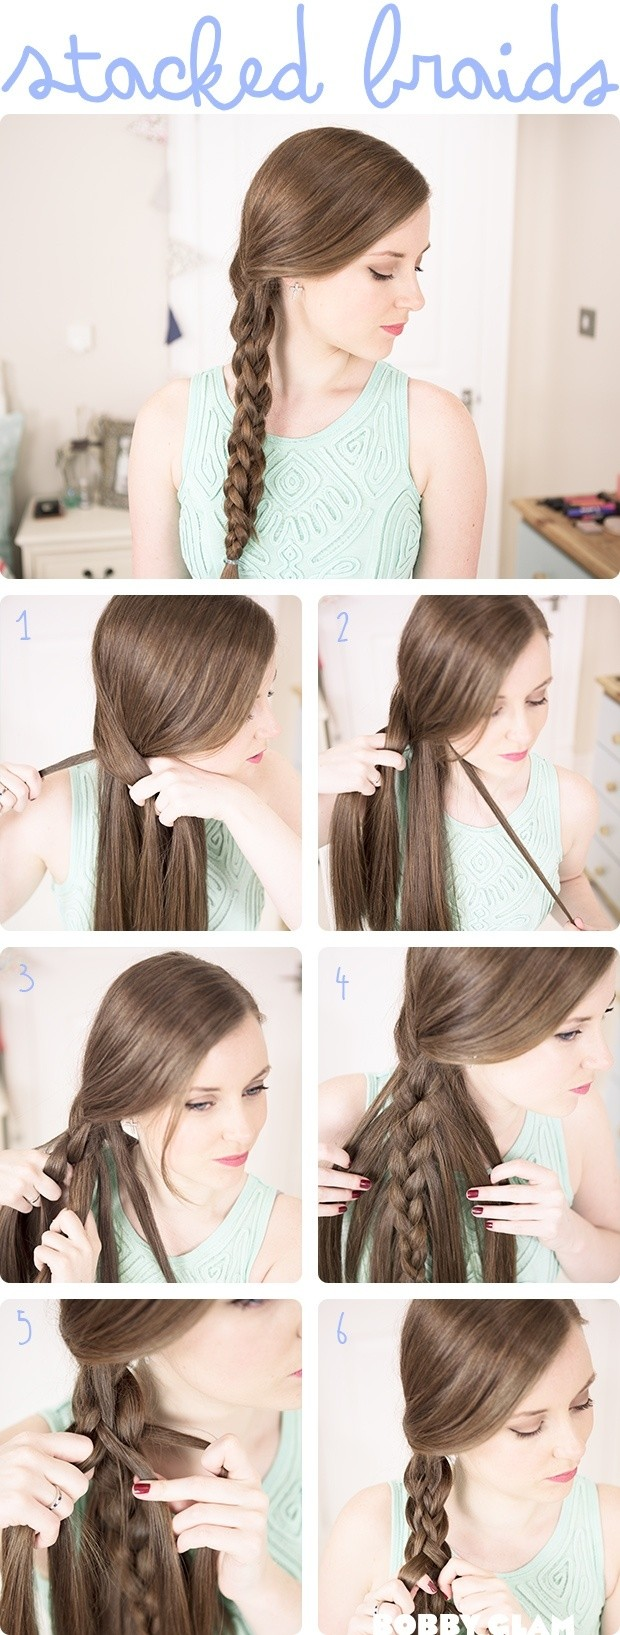 So stylen Sie: Stacked Braids Tutorial